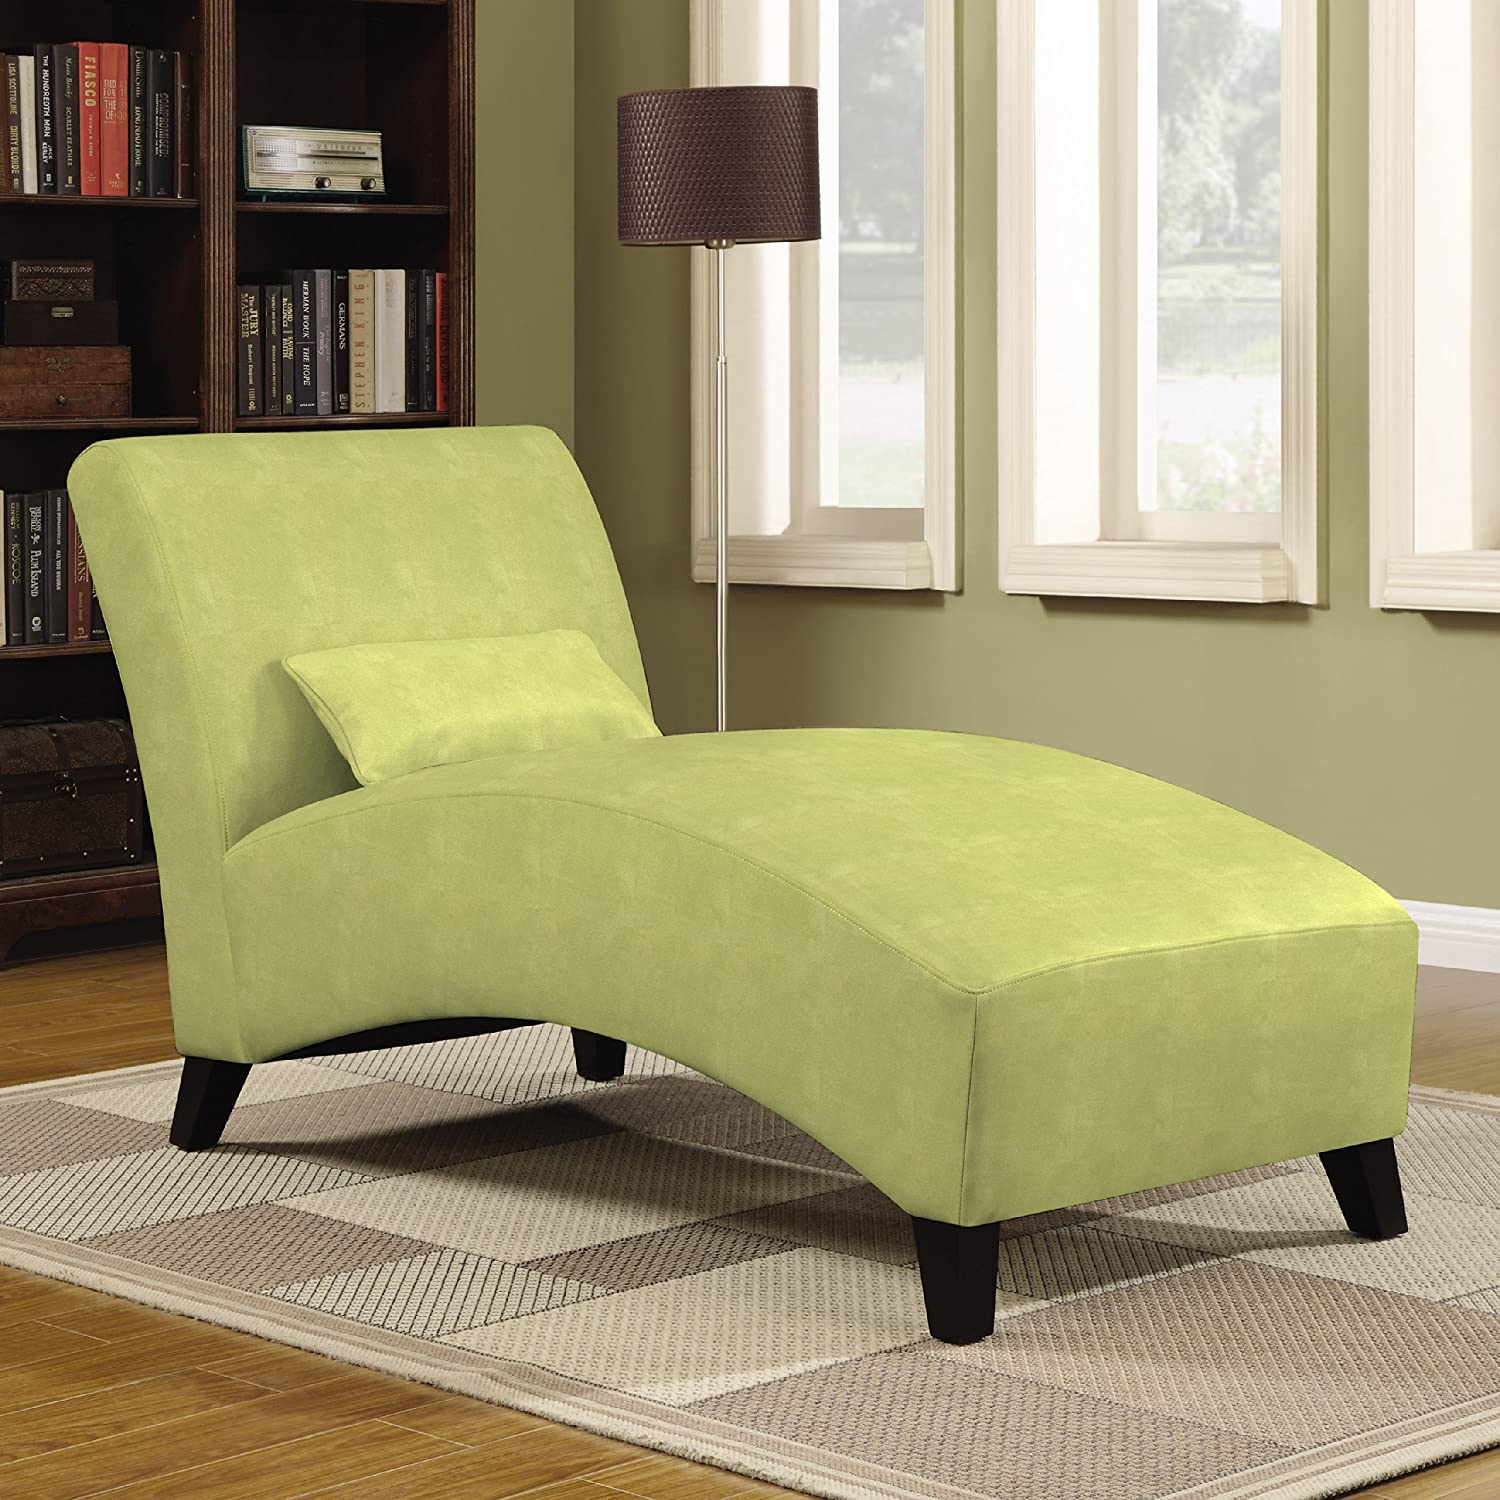 Amazon.com: Handy Living Chaise Lounge Chair, Gecko Green: Kitchen ...